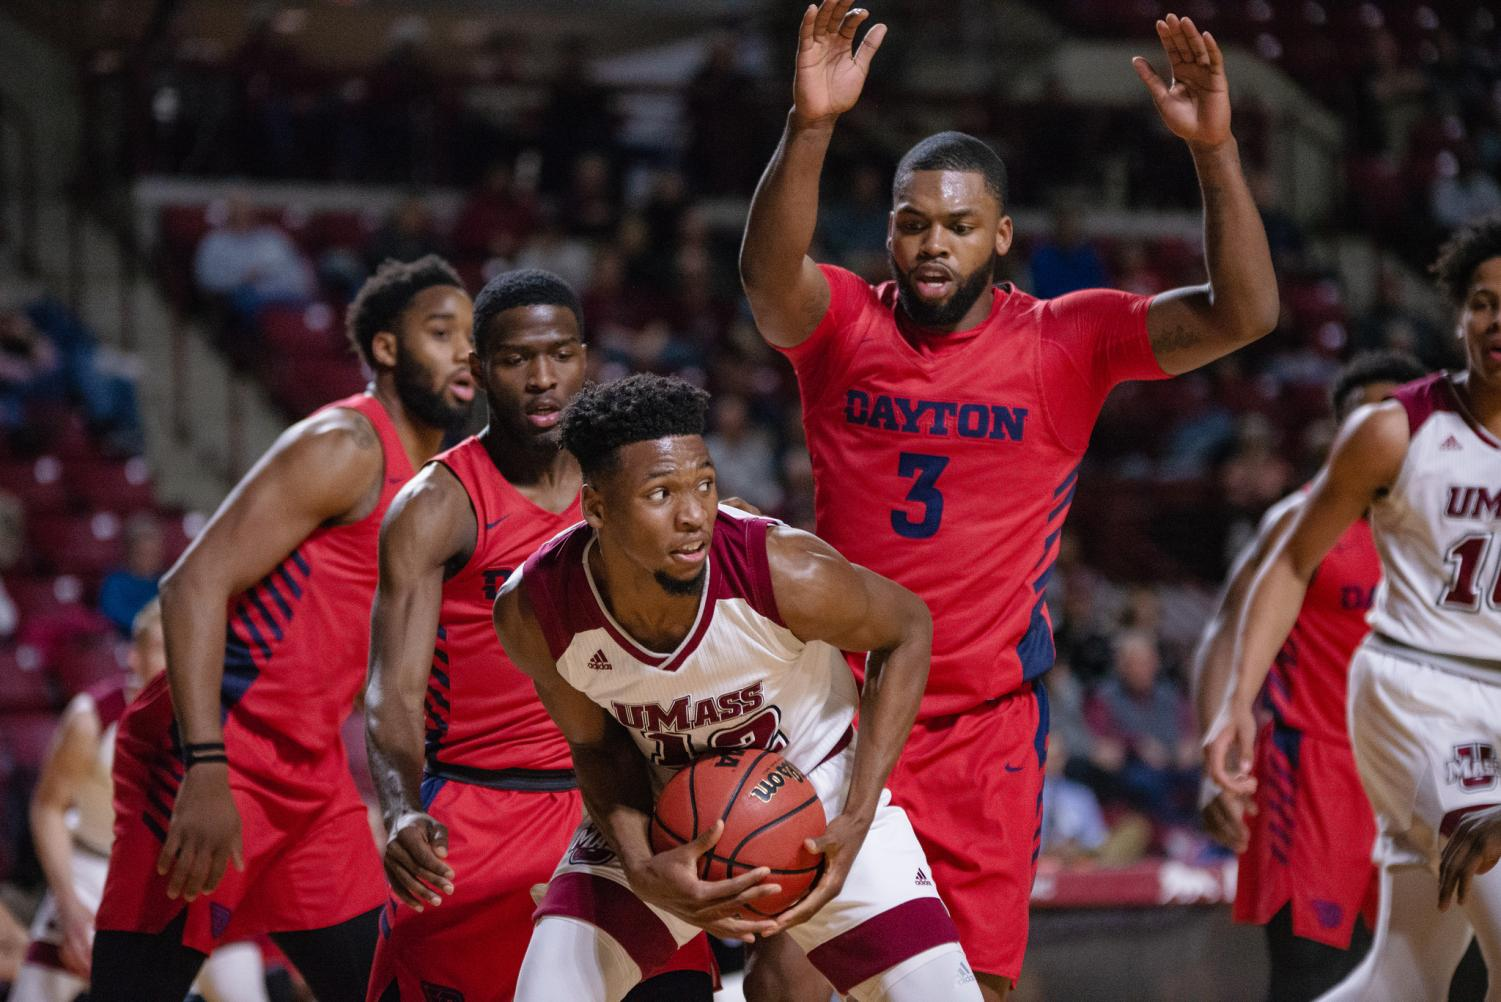 purchase cheap 55bf1 c3009 GALLERY: Men's basketball loses to Dayton Flyers ...